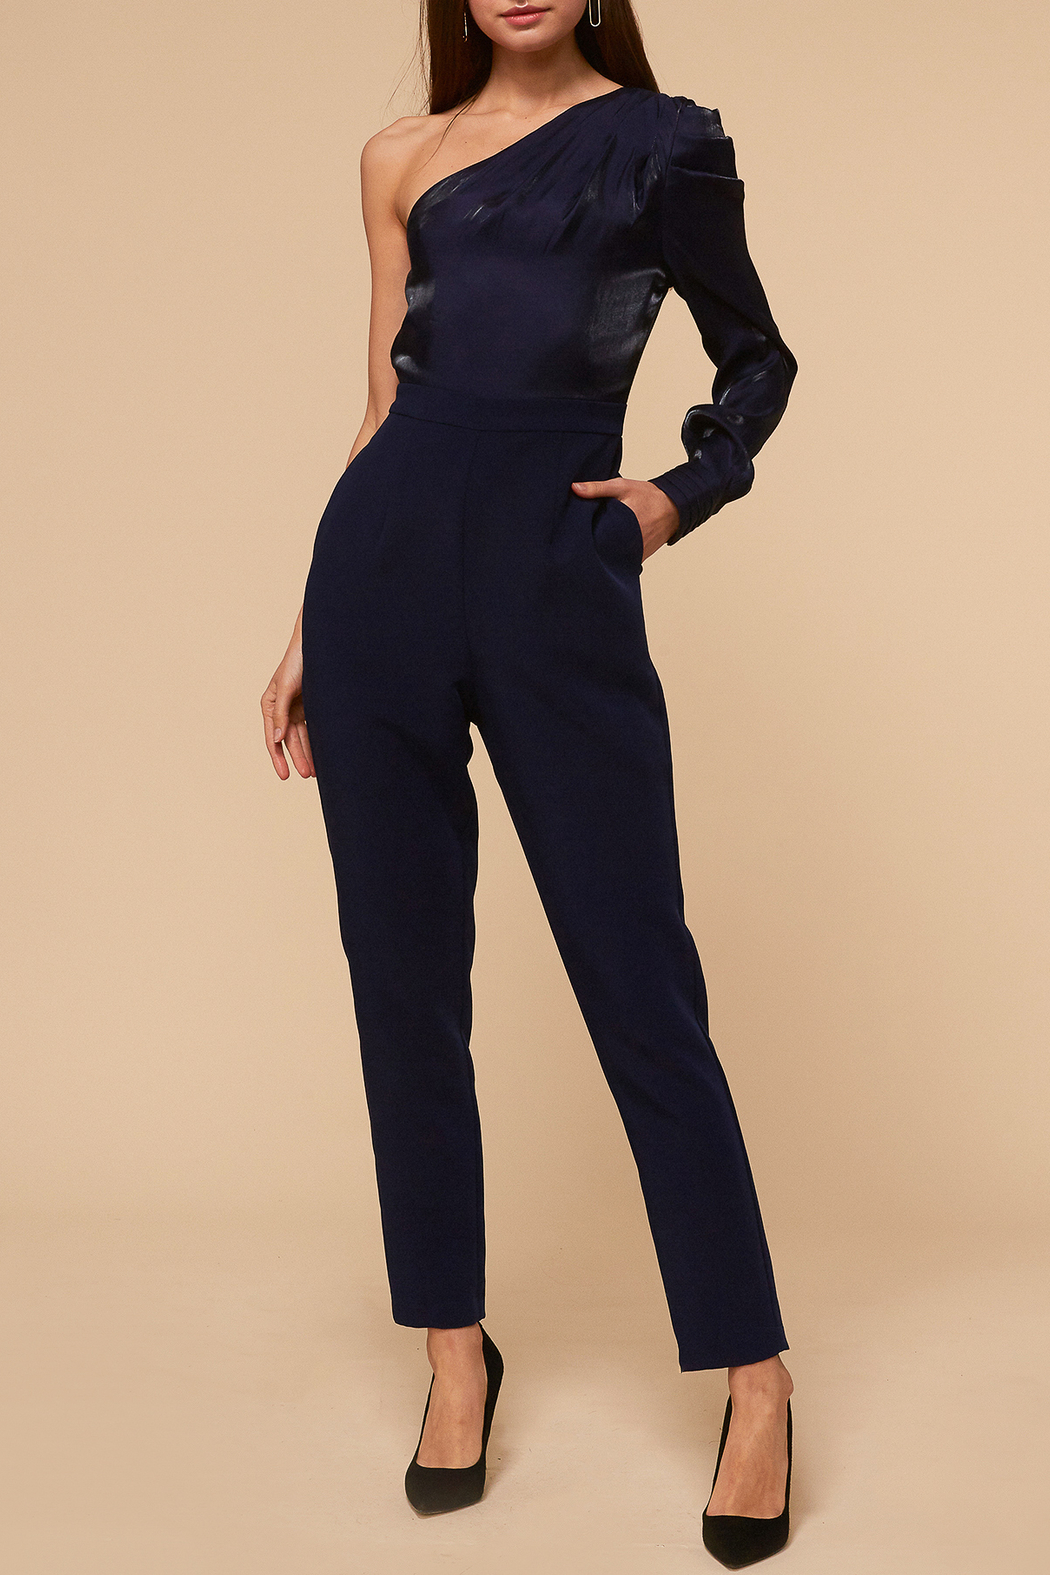 Adelyn Rae Clarissa One Shoulder Jumpsuit - Main Image